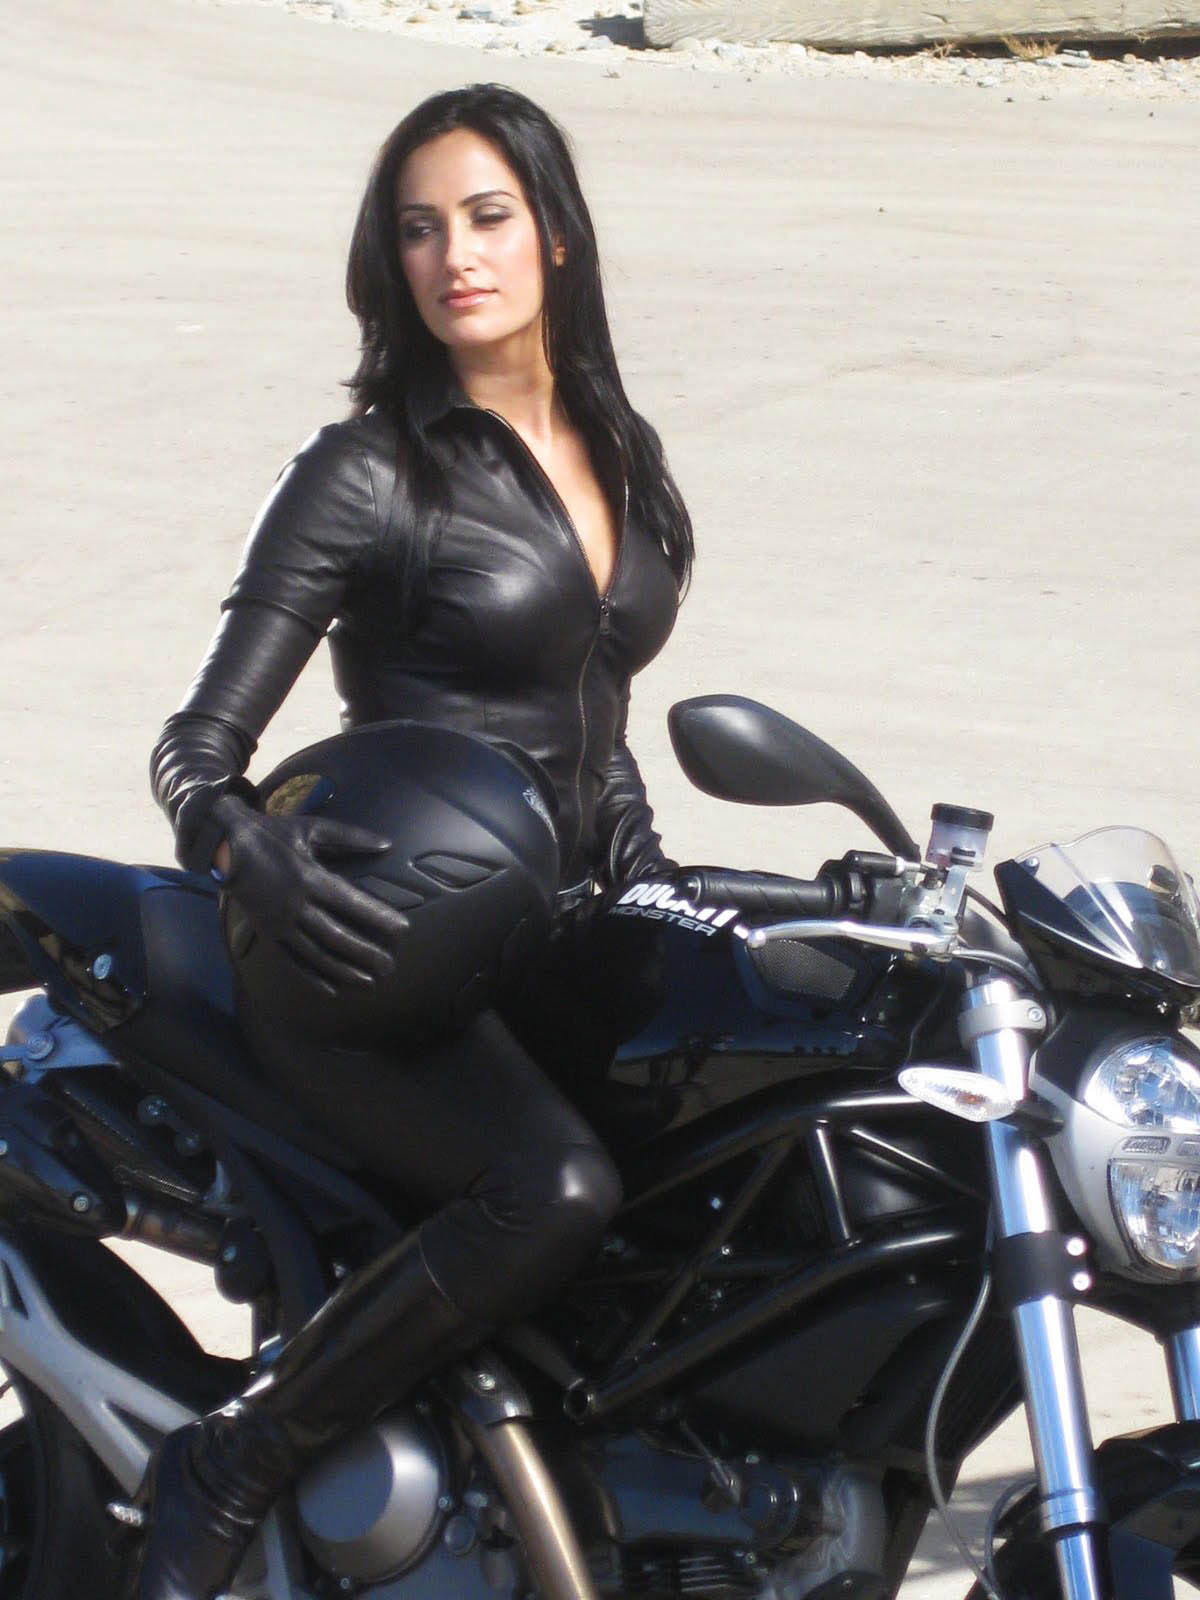 Xxx Girls And Motorcycle